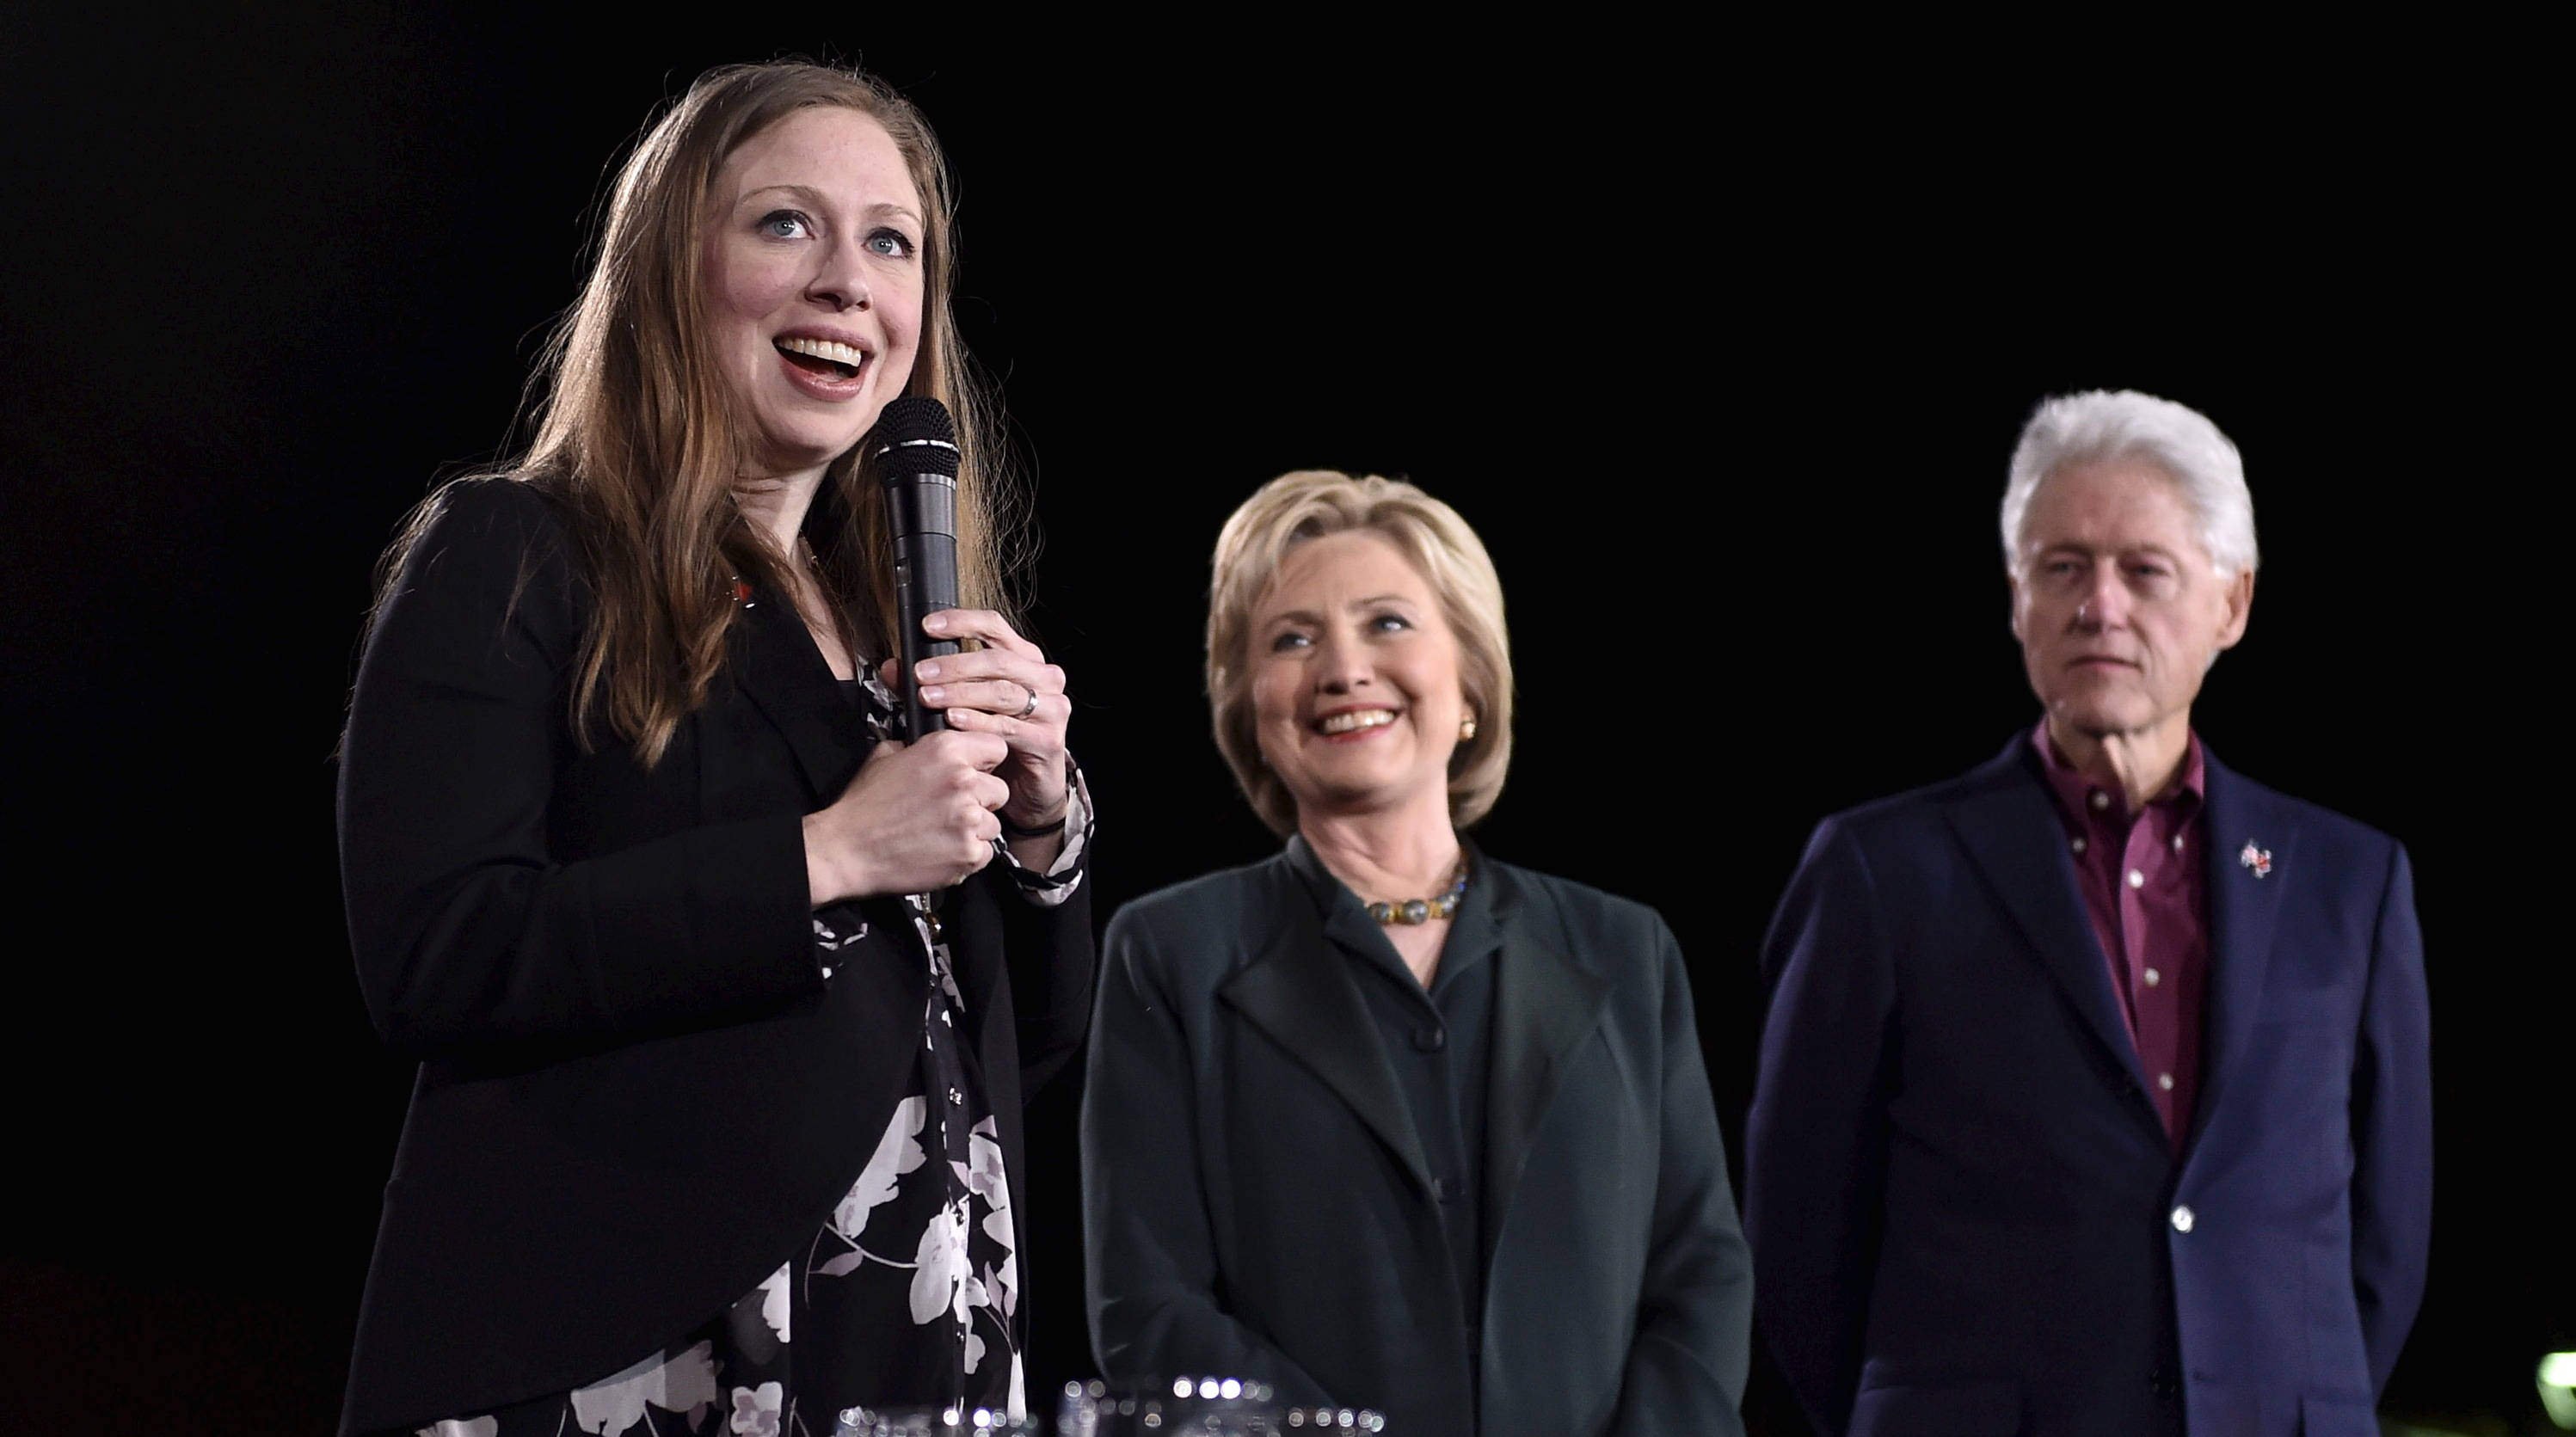 Chelsea Clinton speaks as U.S. Democratic presidential candidate Hillary Clinton and former President Bill Clinton look on at a campaign rally at the Clark County Government Center in Las Vegas